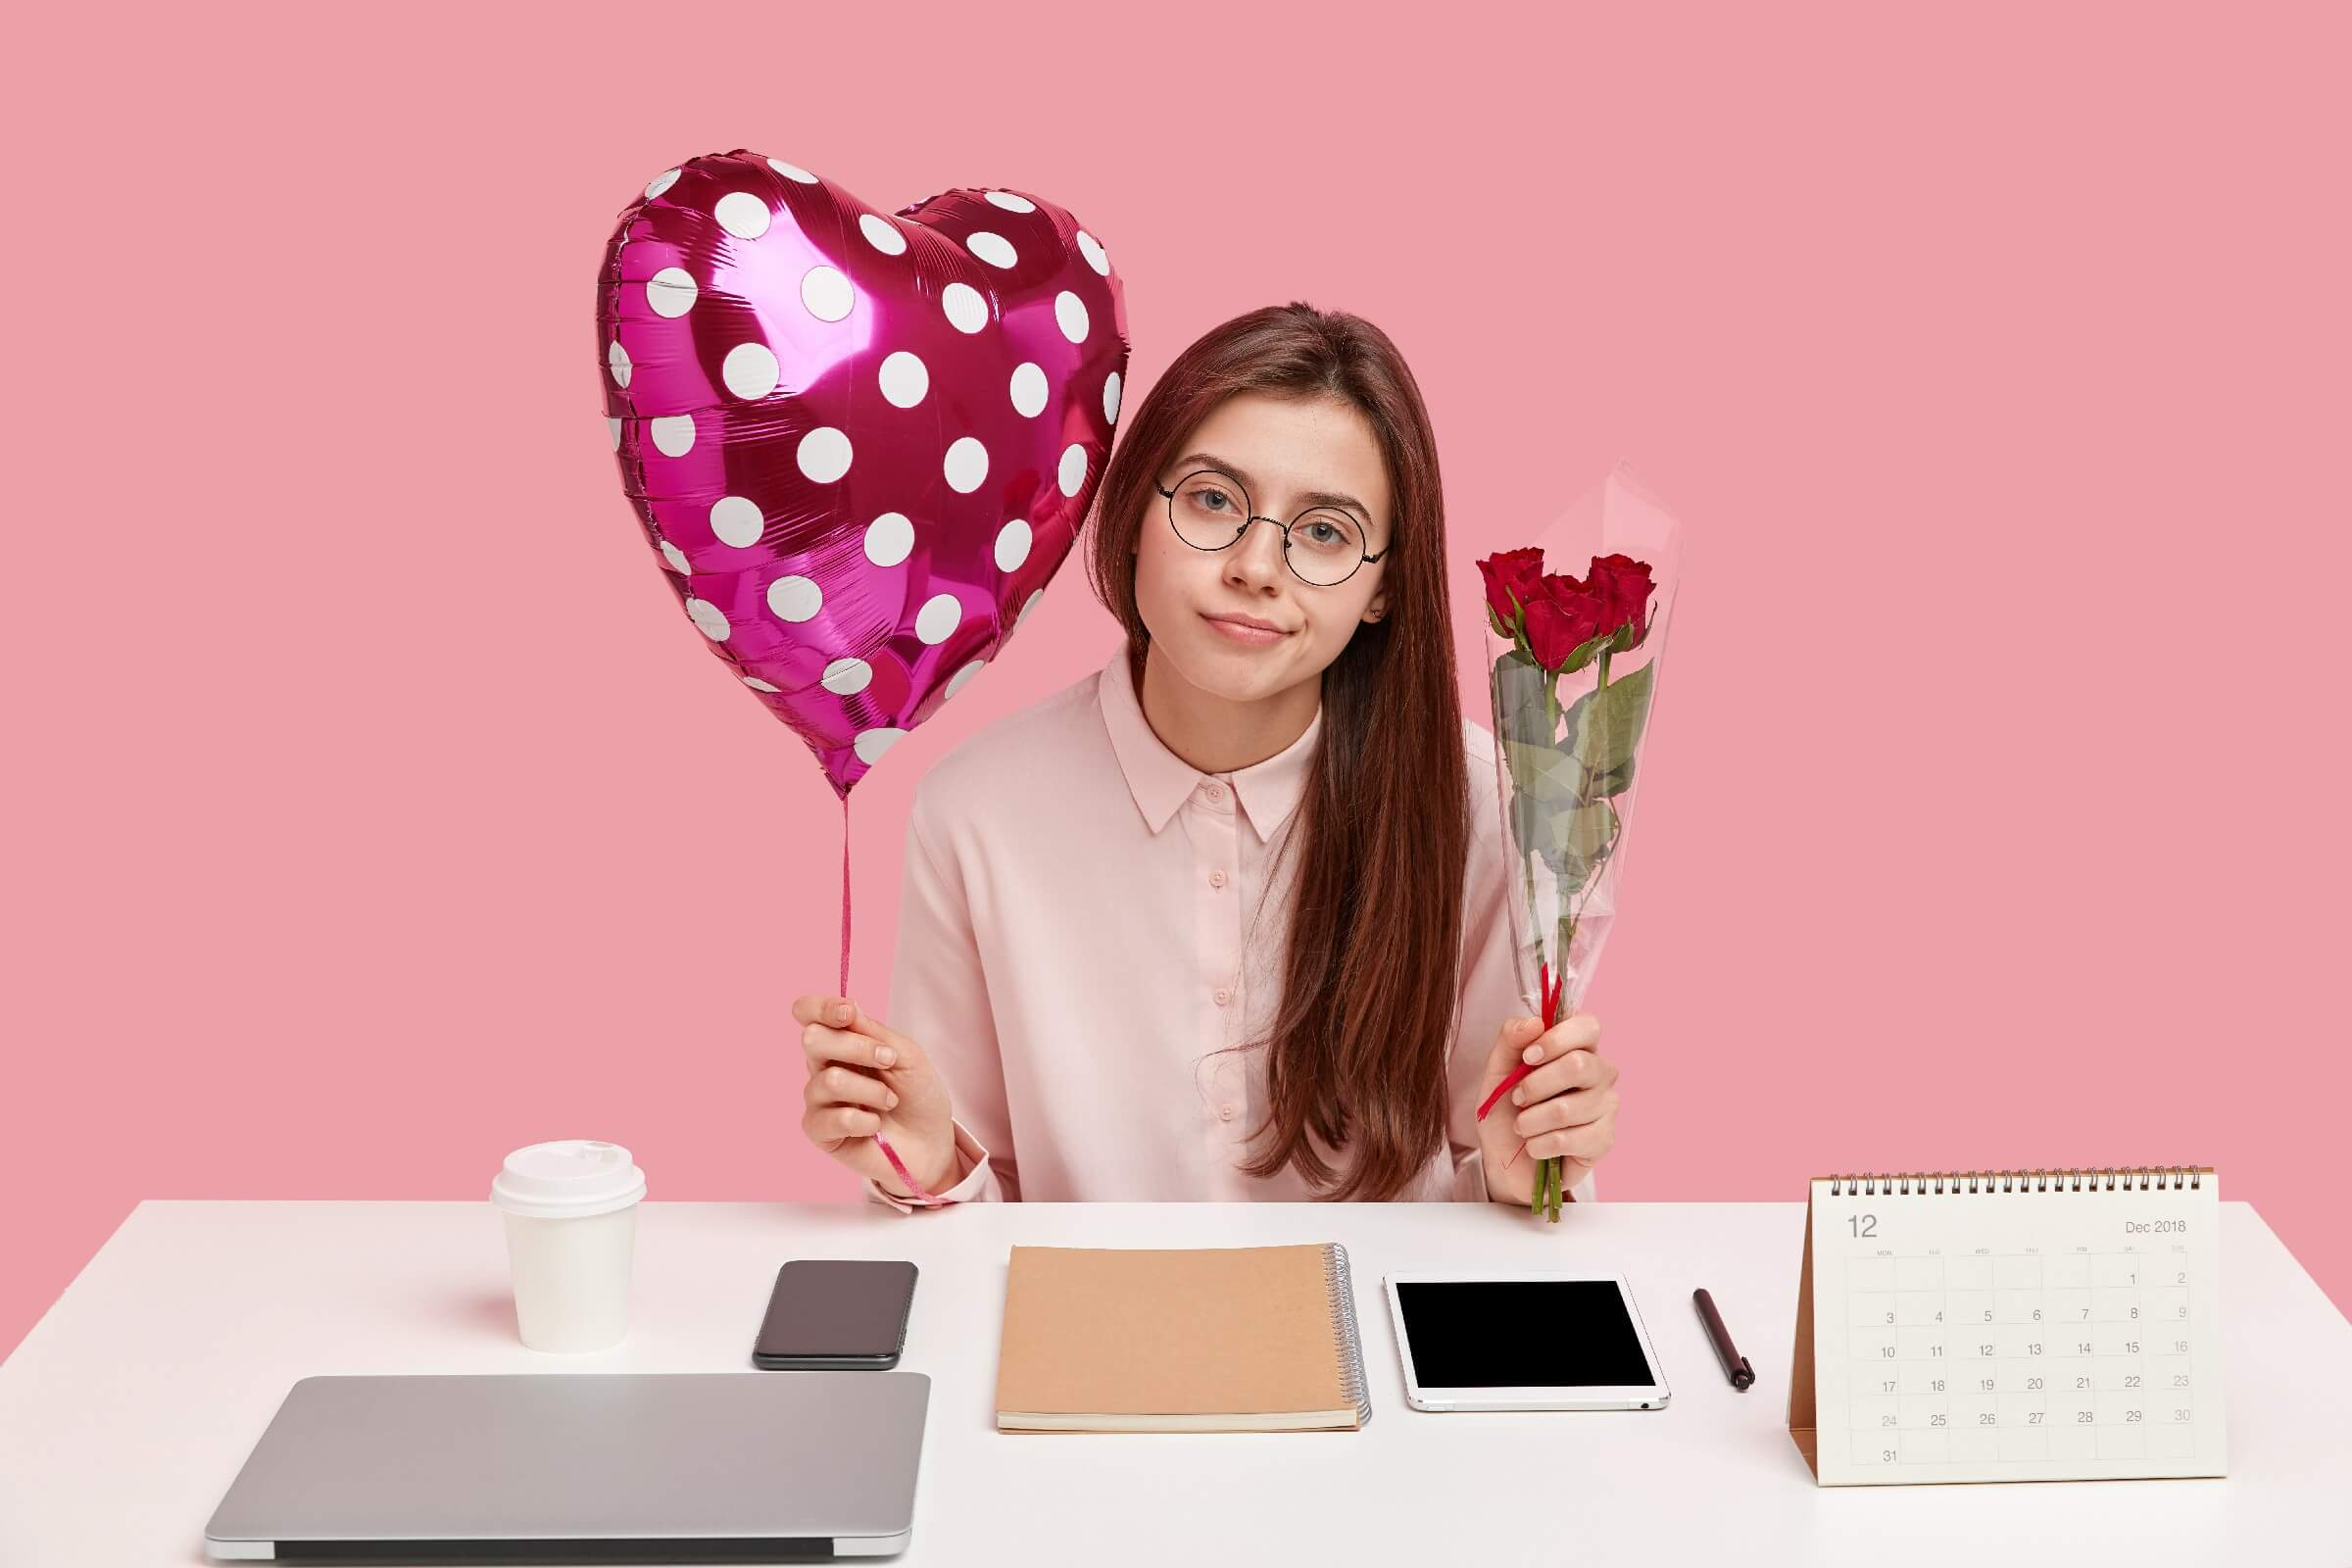 Valentine's Decoration for Office and Home, Best Romantic Ideas